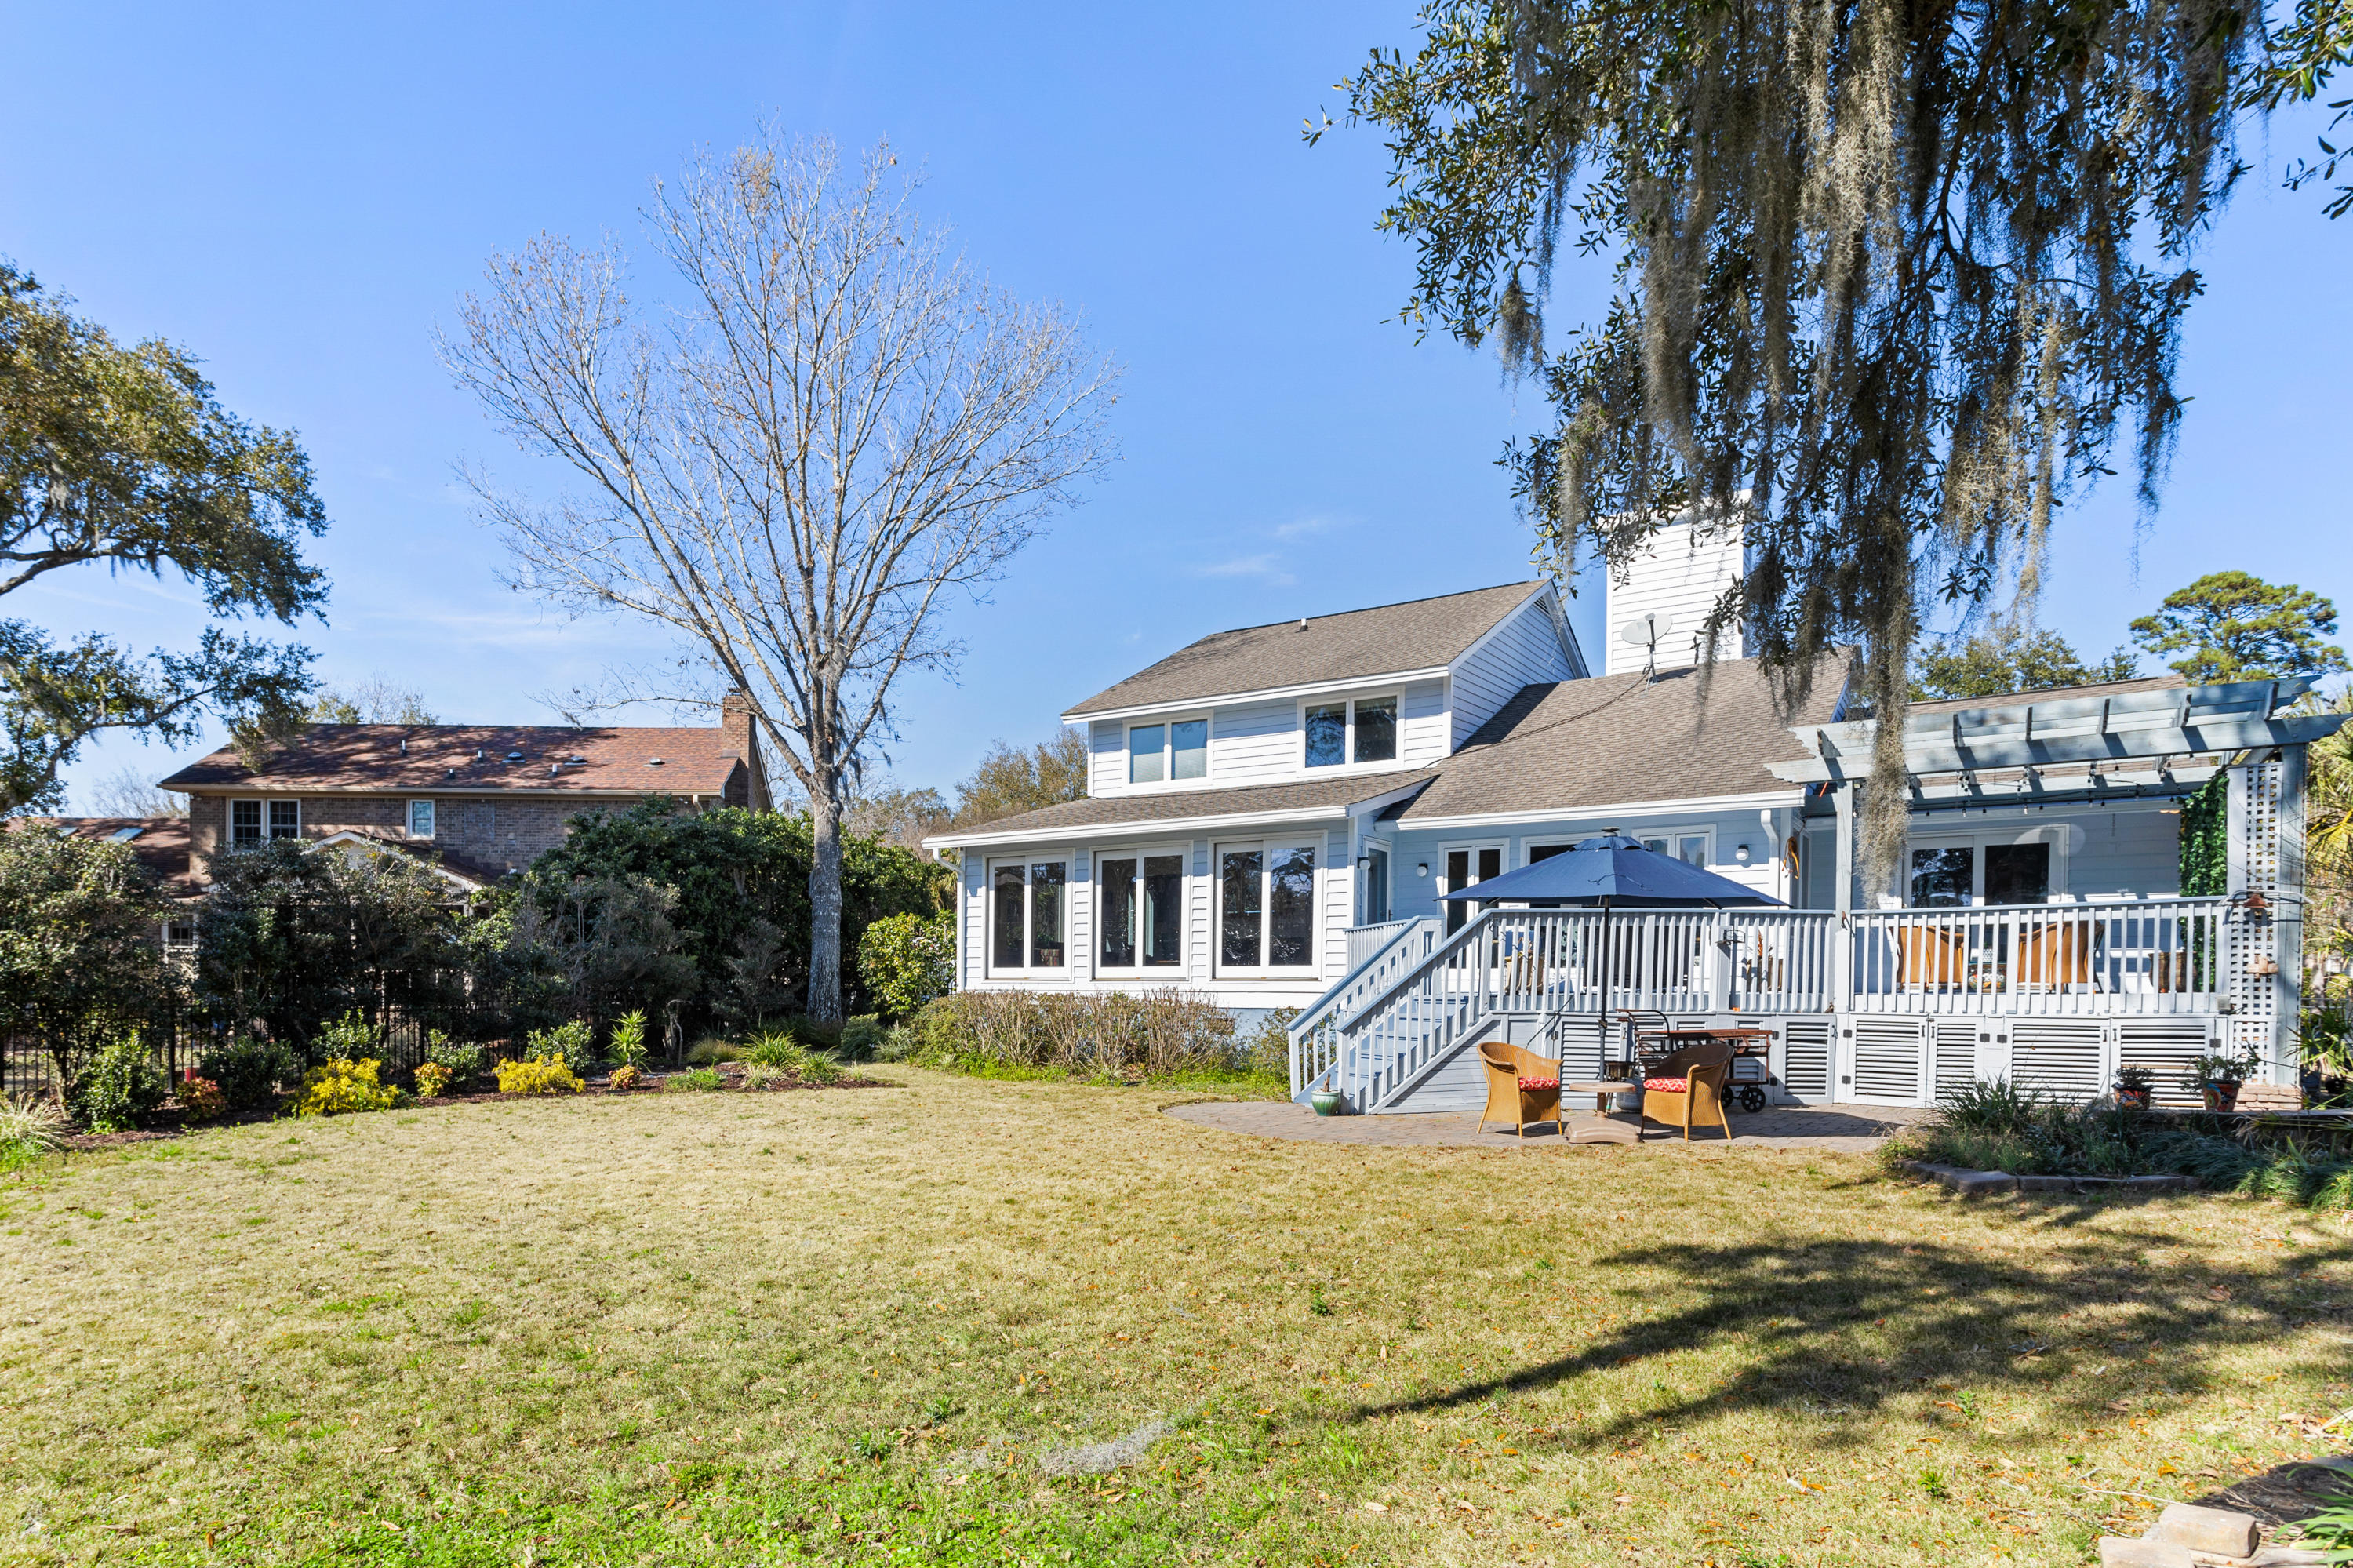 Wakendaw Manor Homes For Sale - 1177 Manor, Mount Pleasant, SC - 35